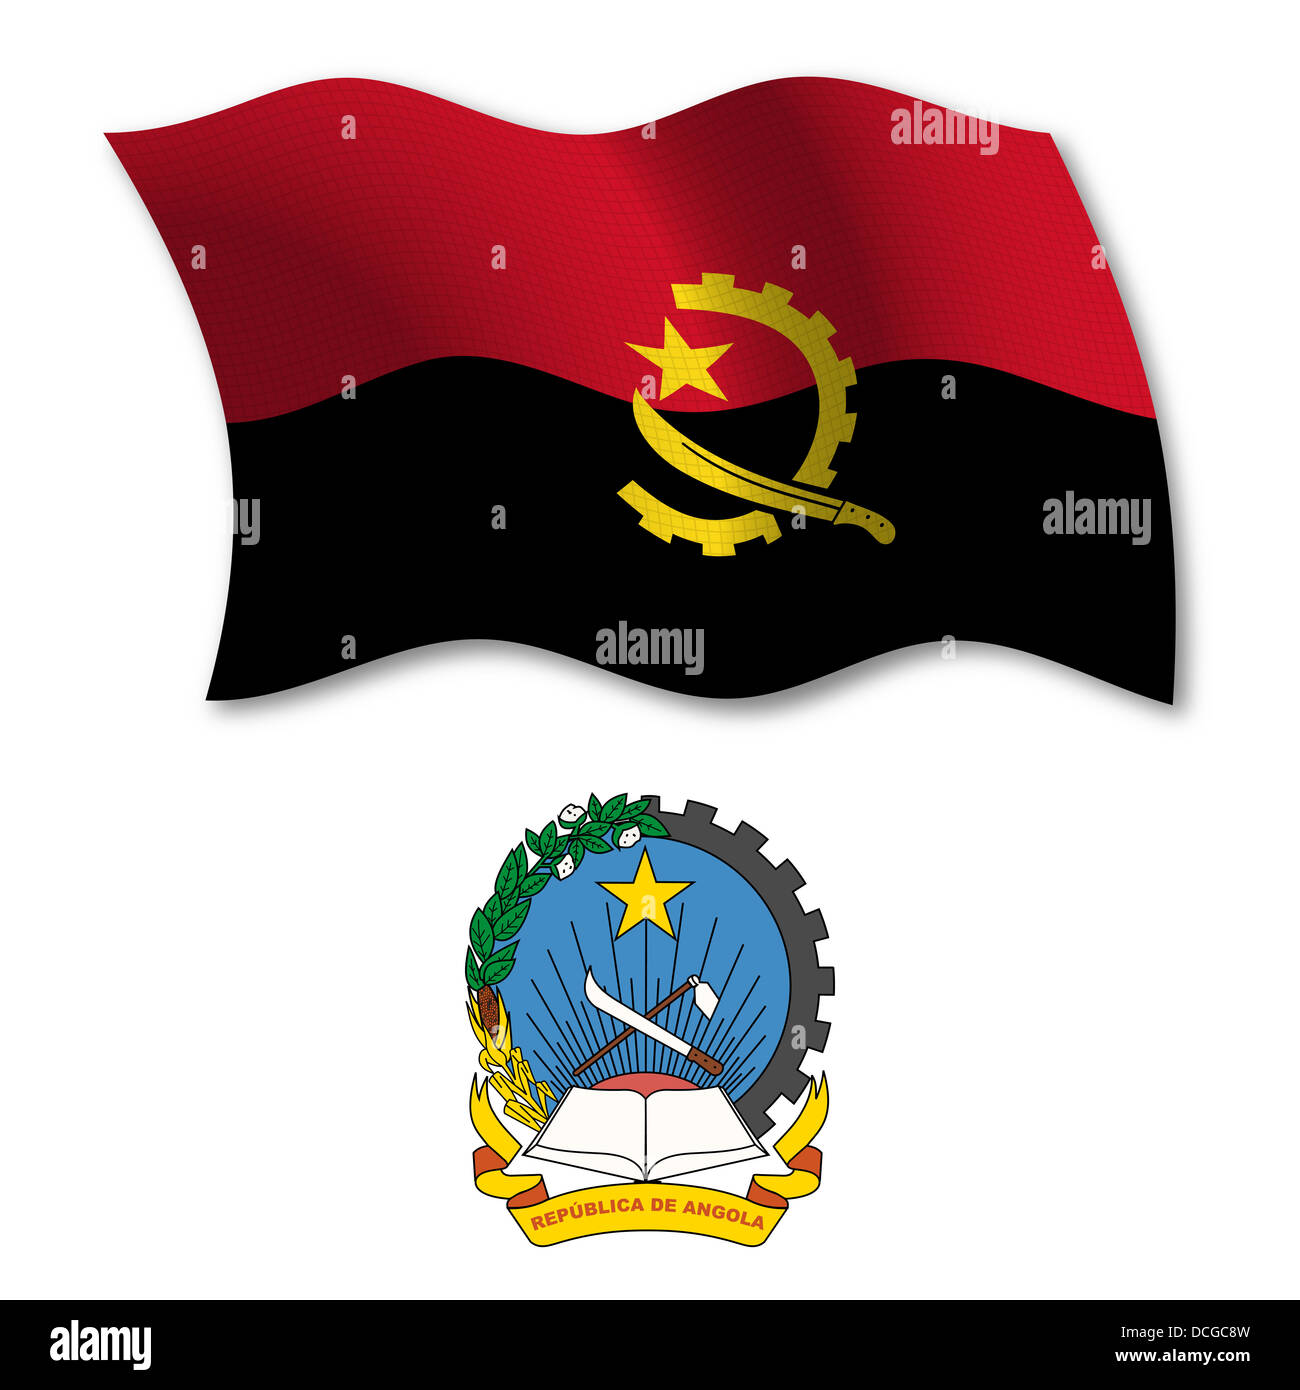 angola, shadowed textured wavy flag and coat of arms against white background, vector art illustration - Stock Image